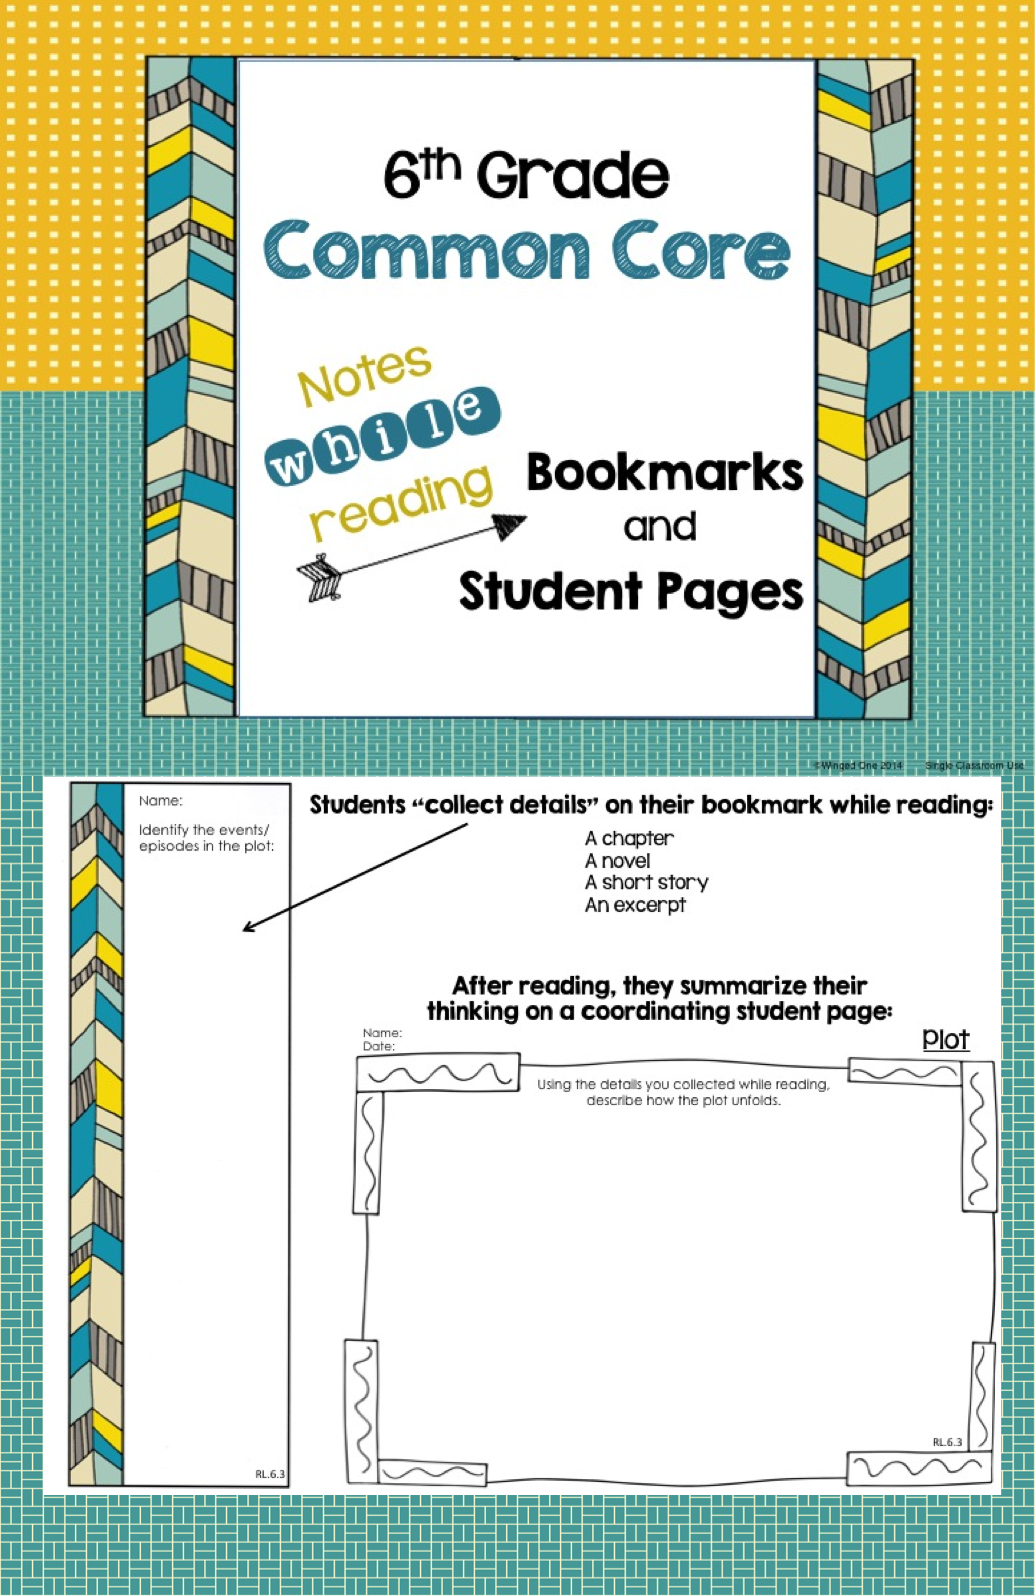 6th Grade Common Core Notes While Reading Bookmarks And Student